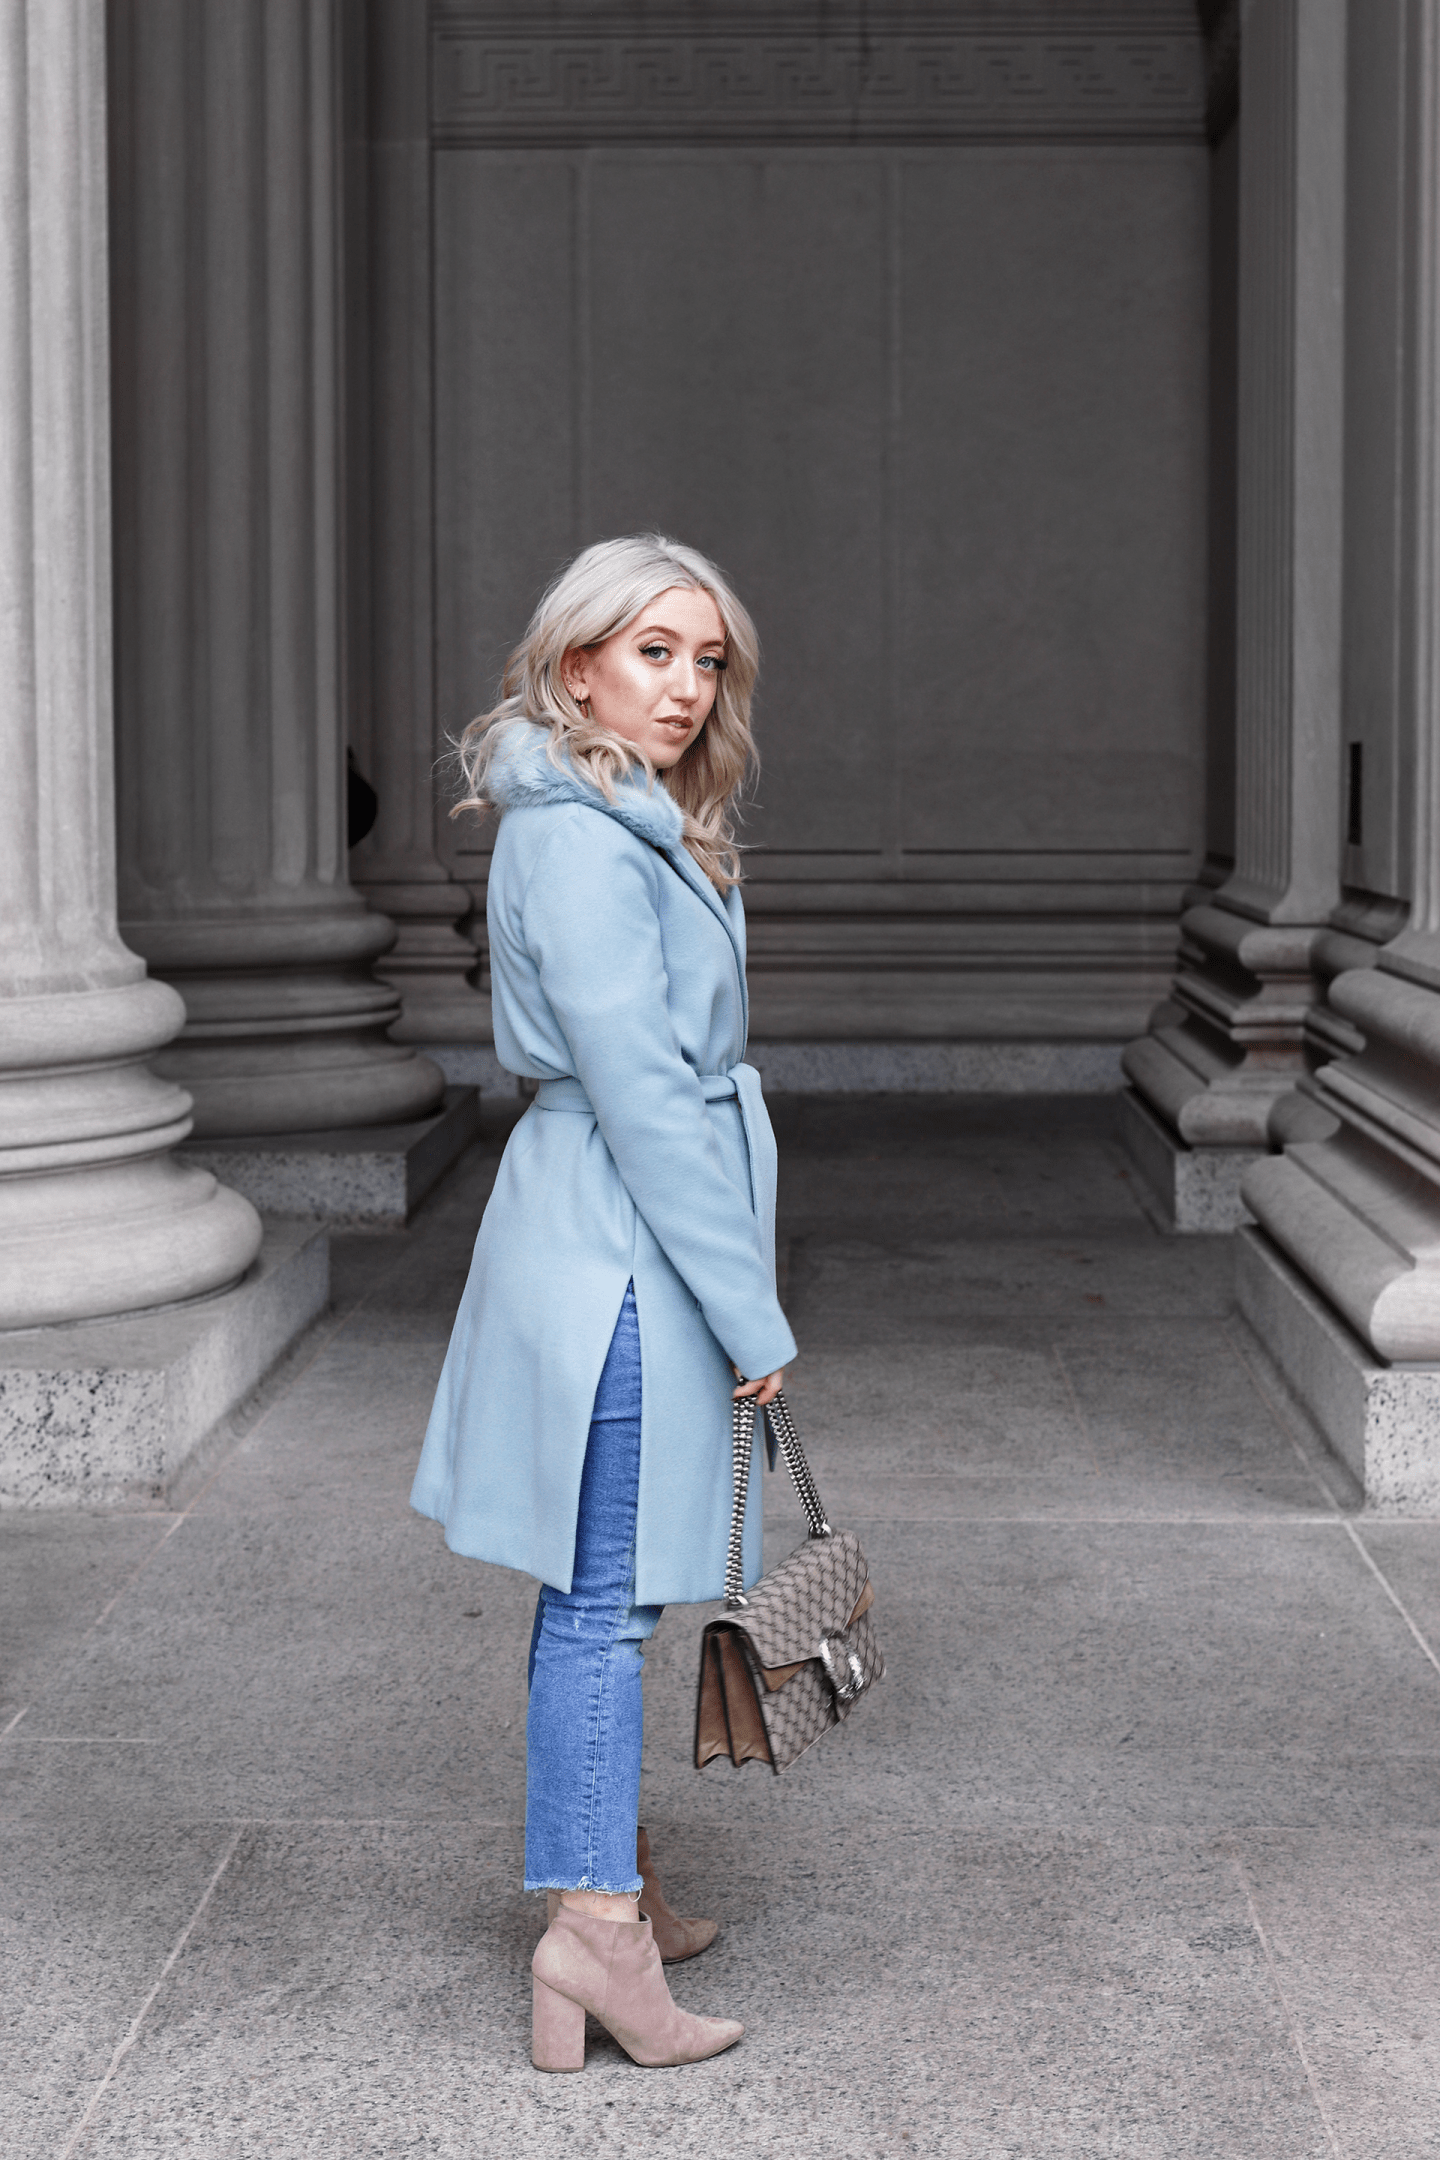 The Perfect Coat For This Season